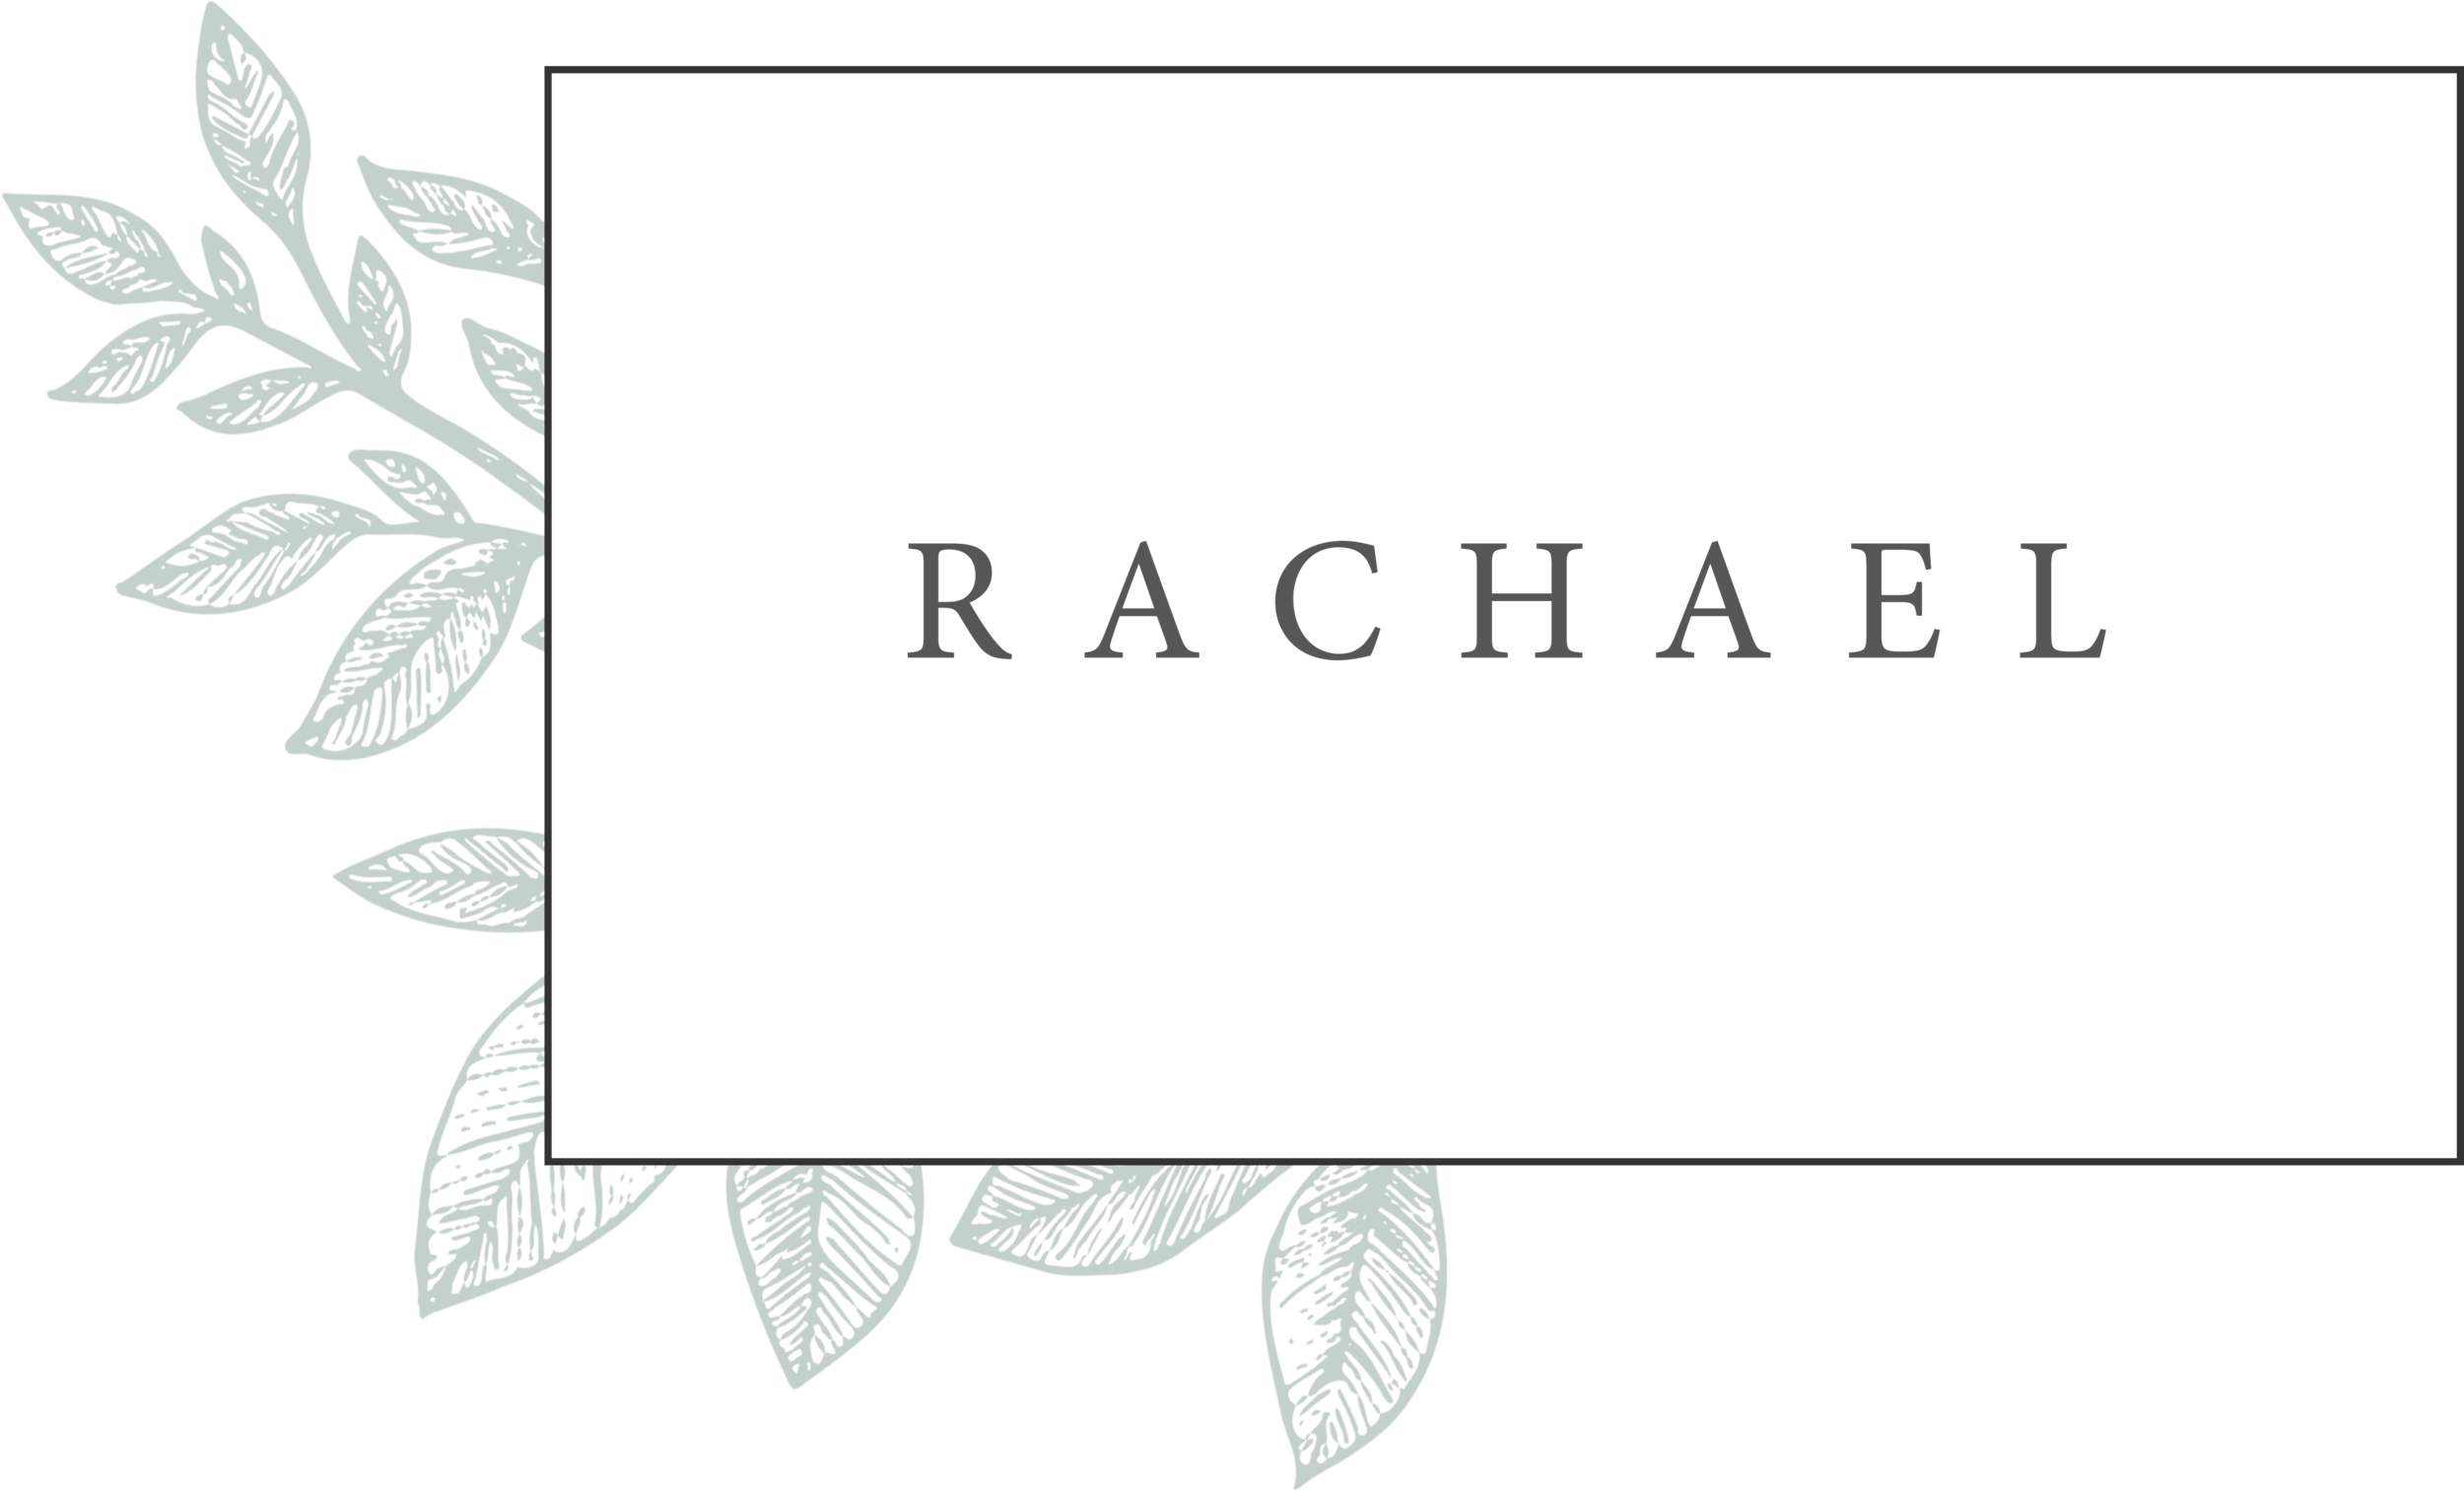 rachael-about-nametag.png